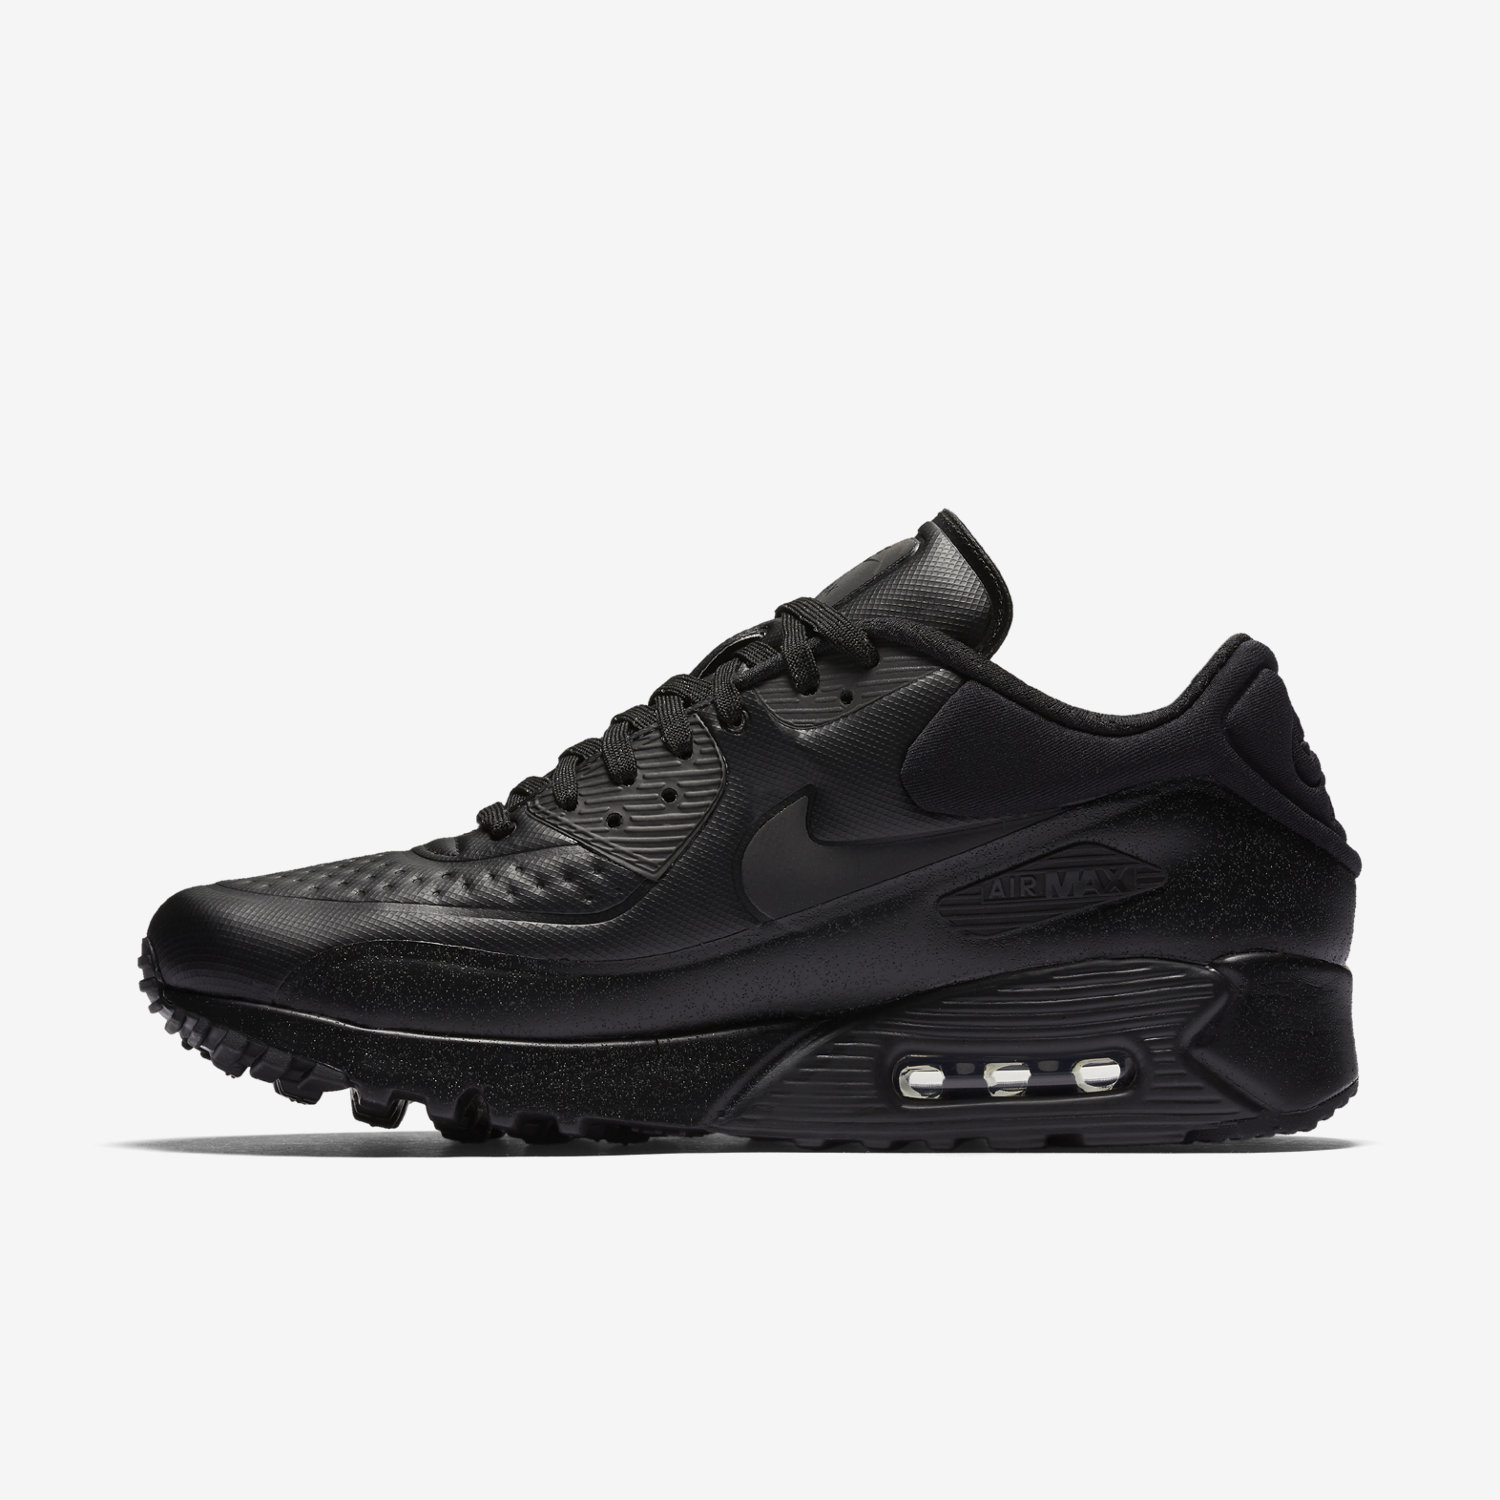 new arrival d0132 c1eab ... noir orange rouge blanche homme chaussures 7366a 20fc4  new zealand hommes  air max 90 basketsboot gris rouge femmes 8d96a 9904b